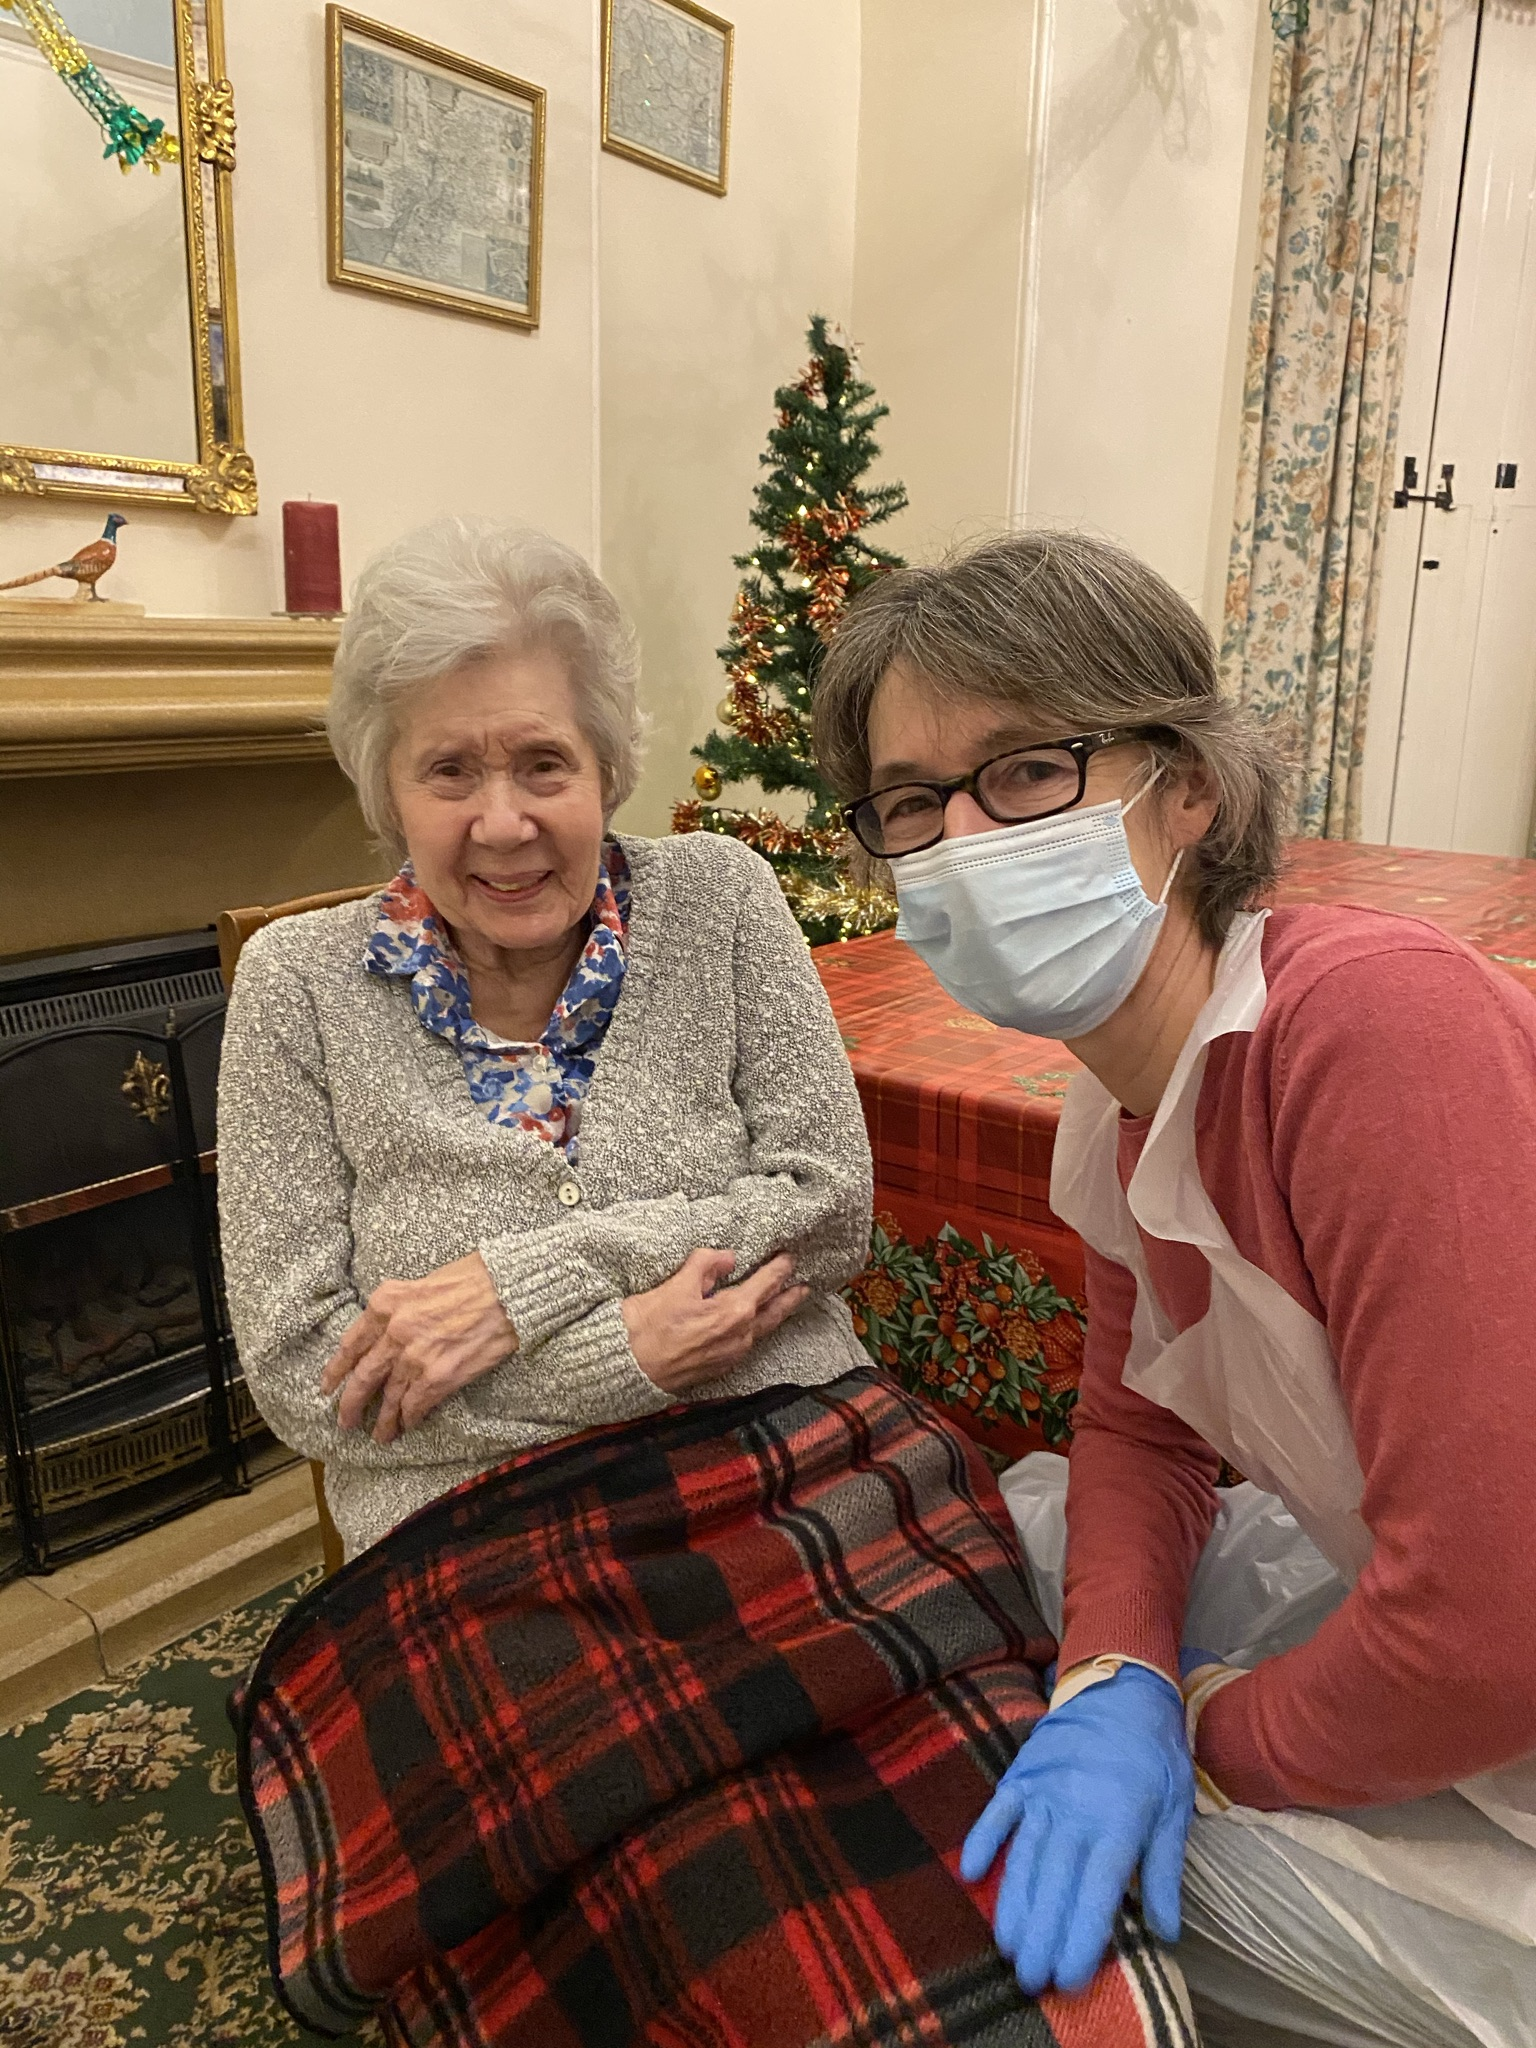 A Mother-Daughter Visit Following an LFD COVID-19 Test - 17.12.20